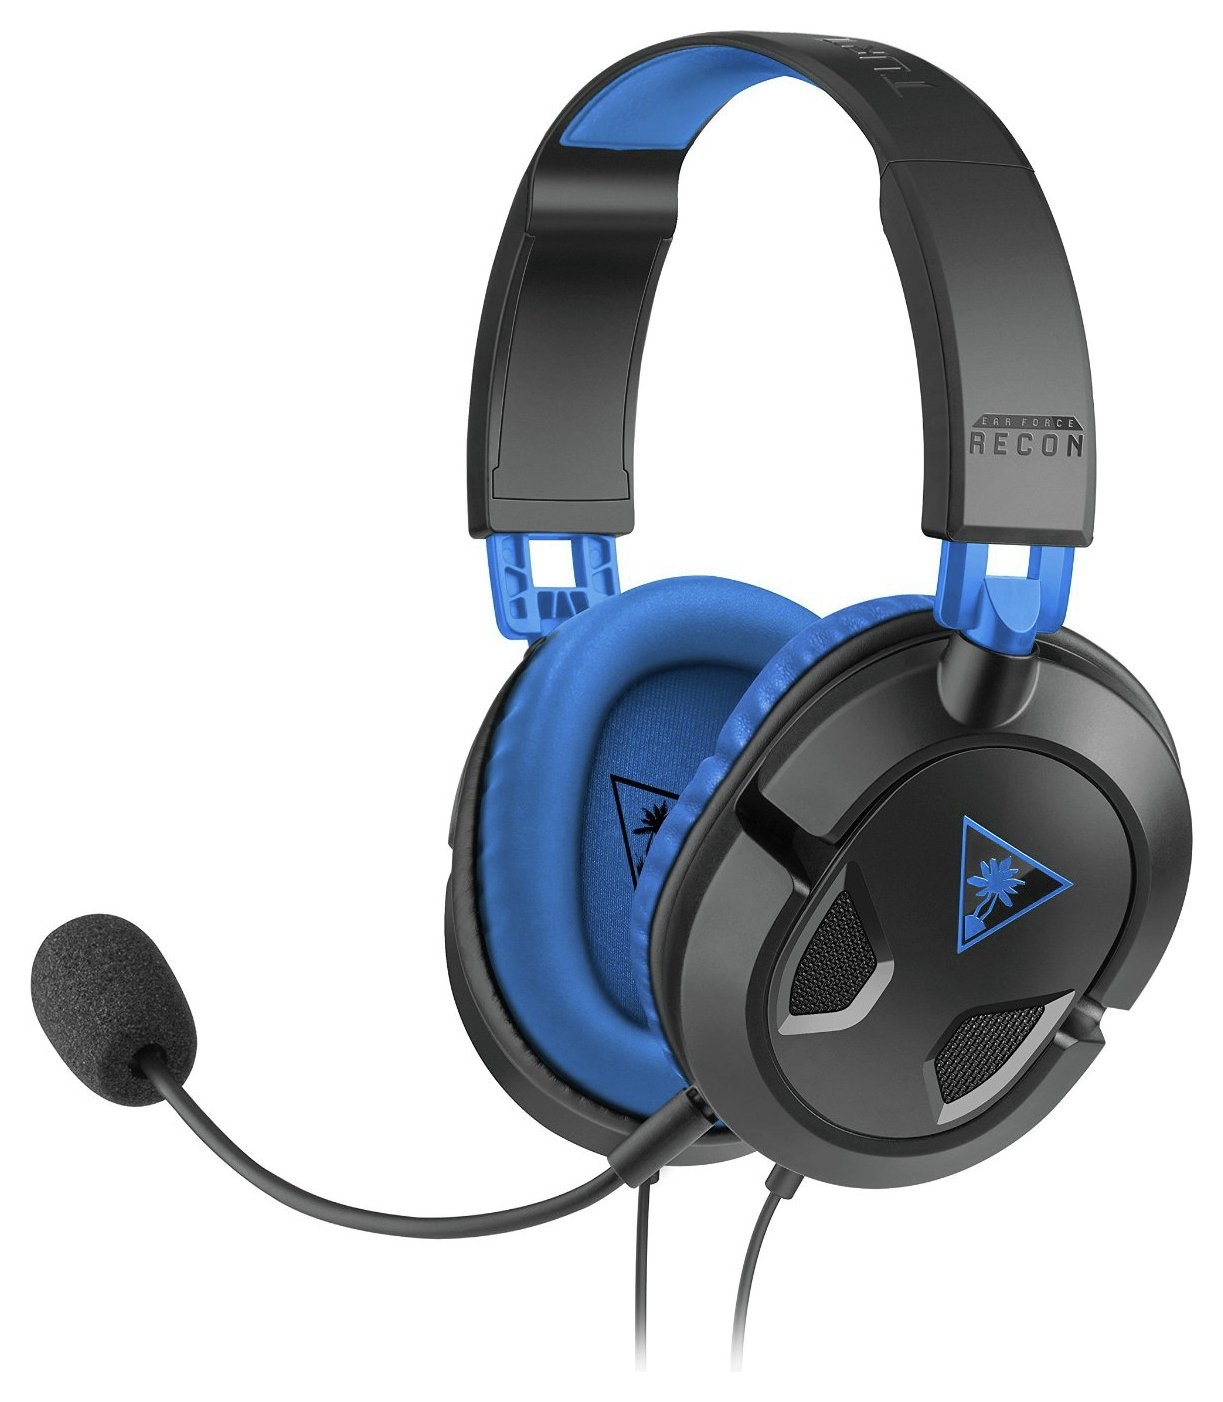 Turtle Beach Turtle Beach Recon 60P Stereo Headset for PS4.